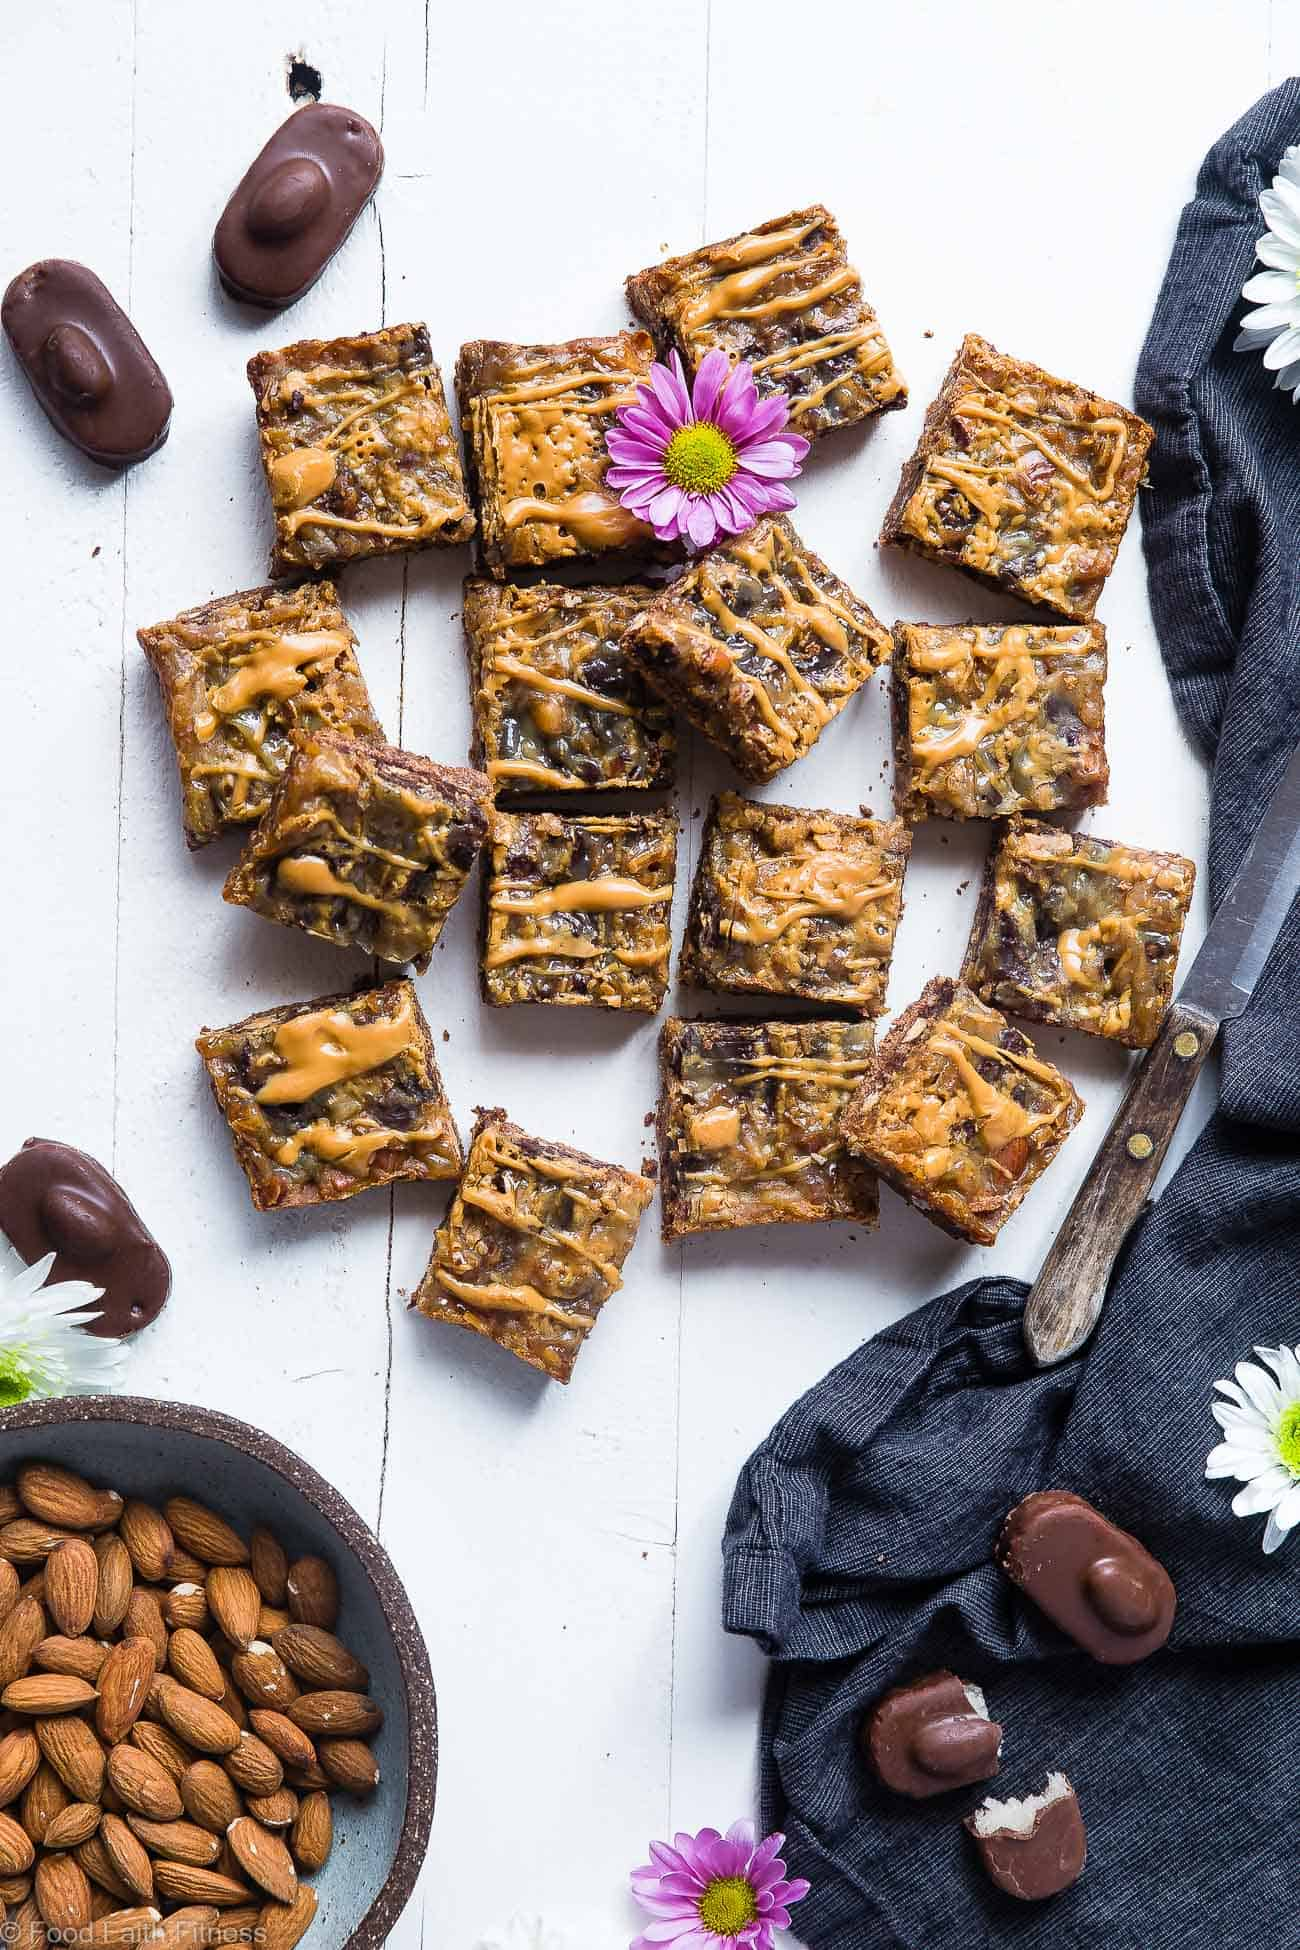 Almond Joy Gluten Free Magic Bars Recipe- These paleo and vegan friendly magic cookie bars taste like an almond joy! They're an easy, healthier spin on a classic treat that you'll never believe is gluten/grain/dairy and refined sugar free! | Foodfaithfitness.com | @FoodFaithFit